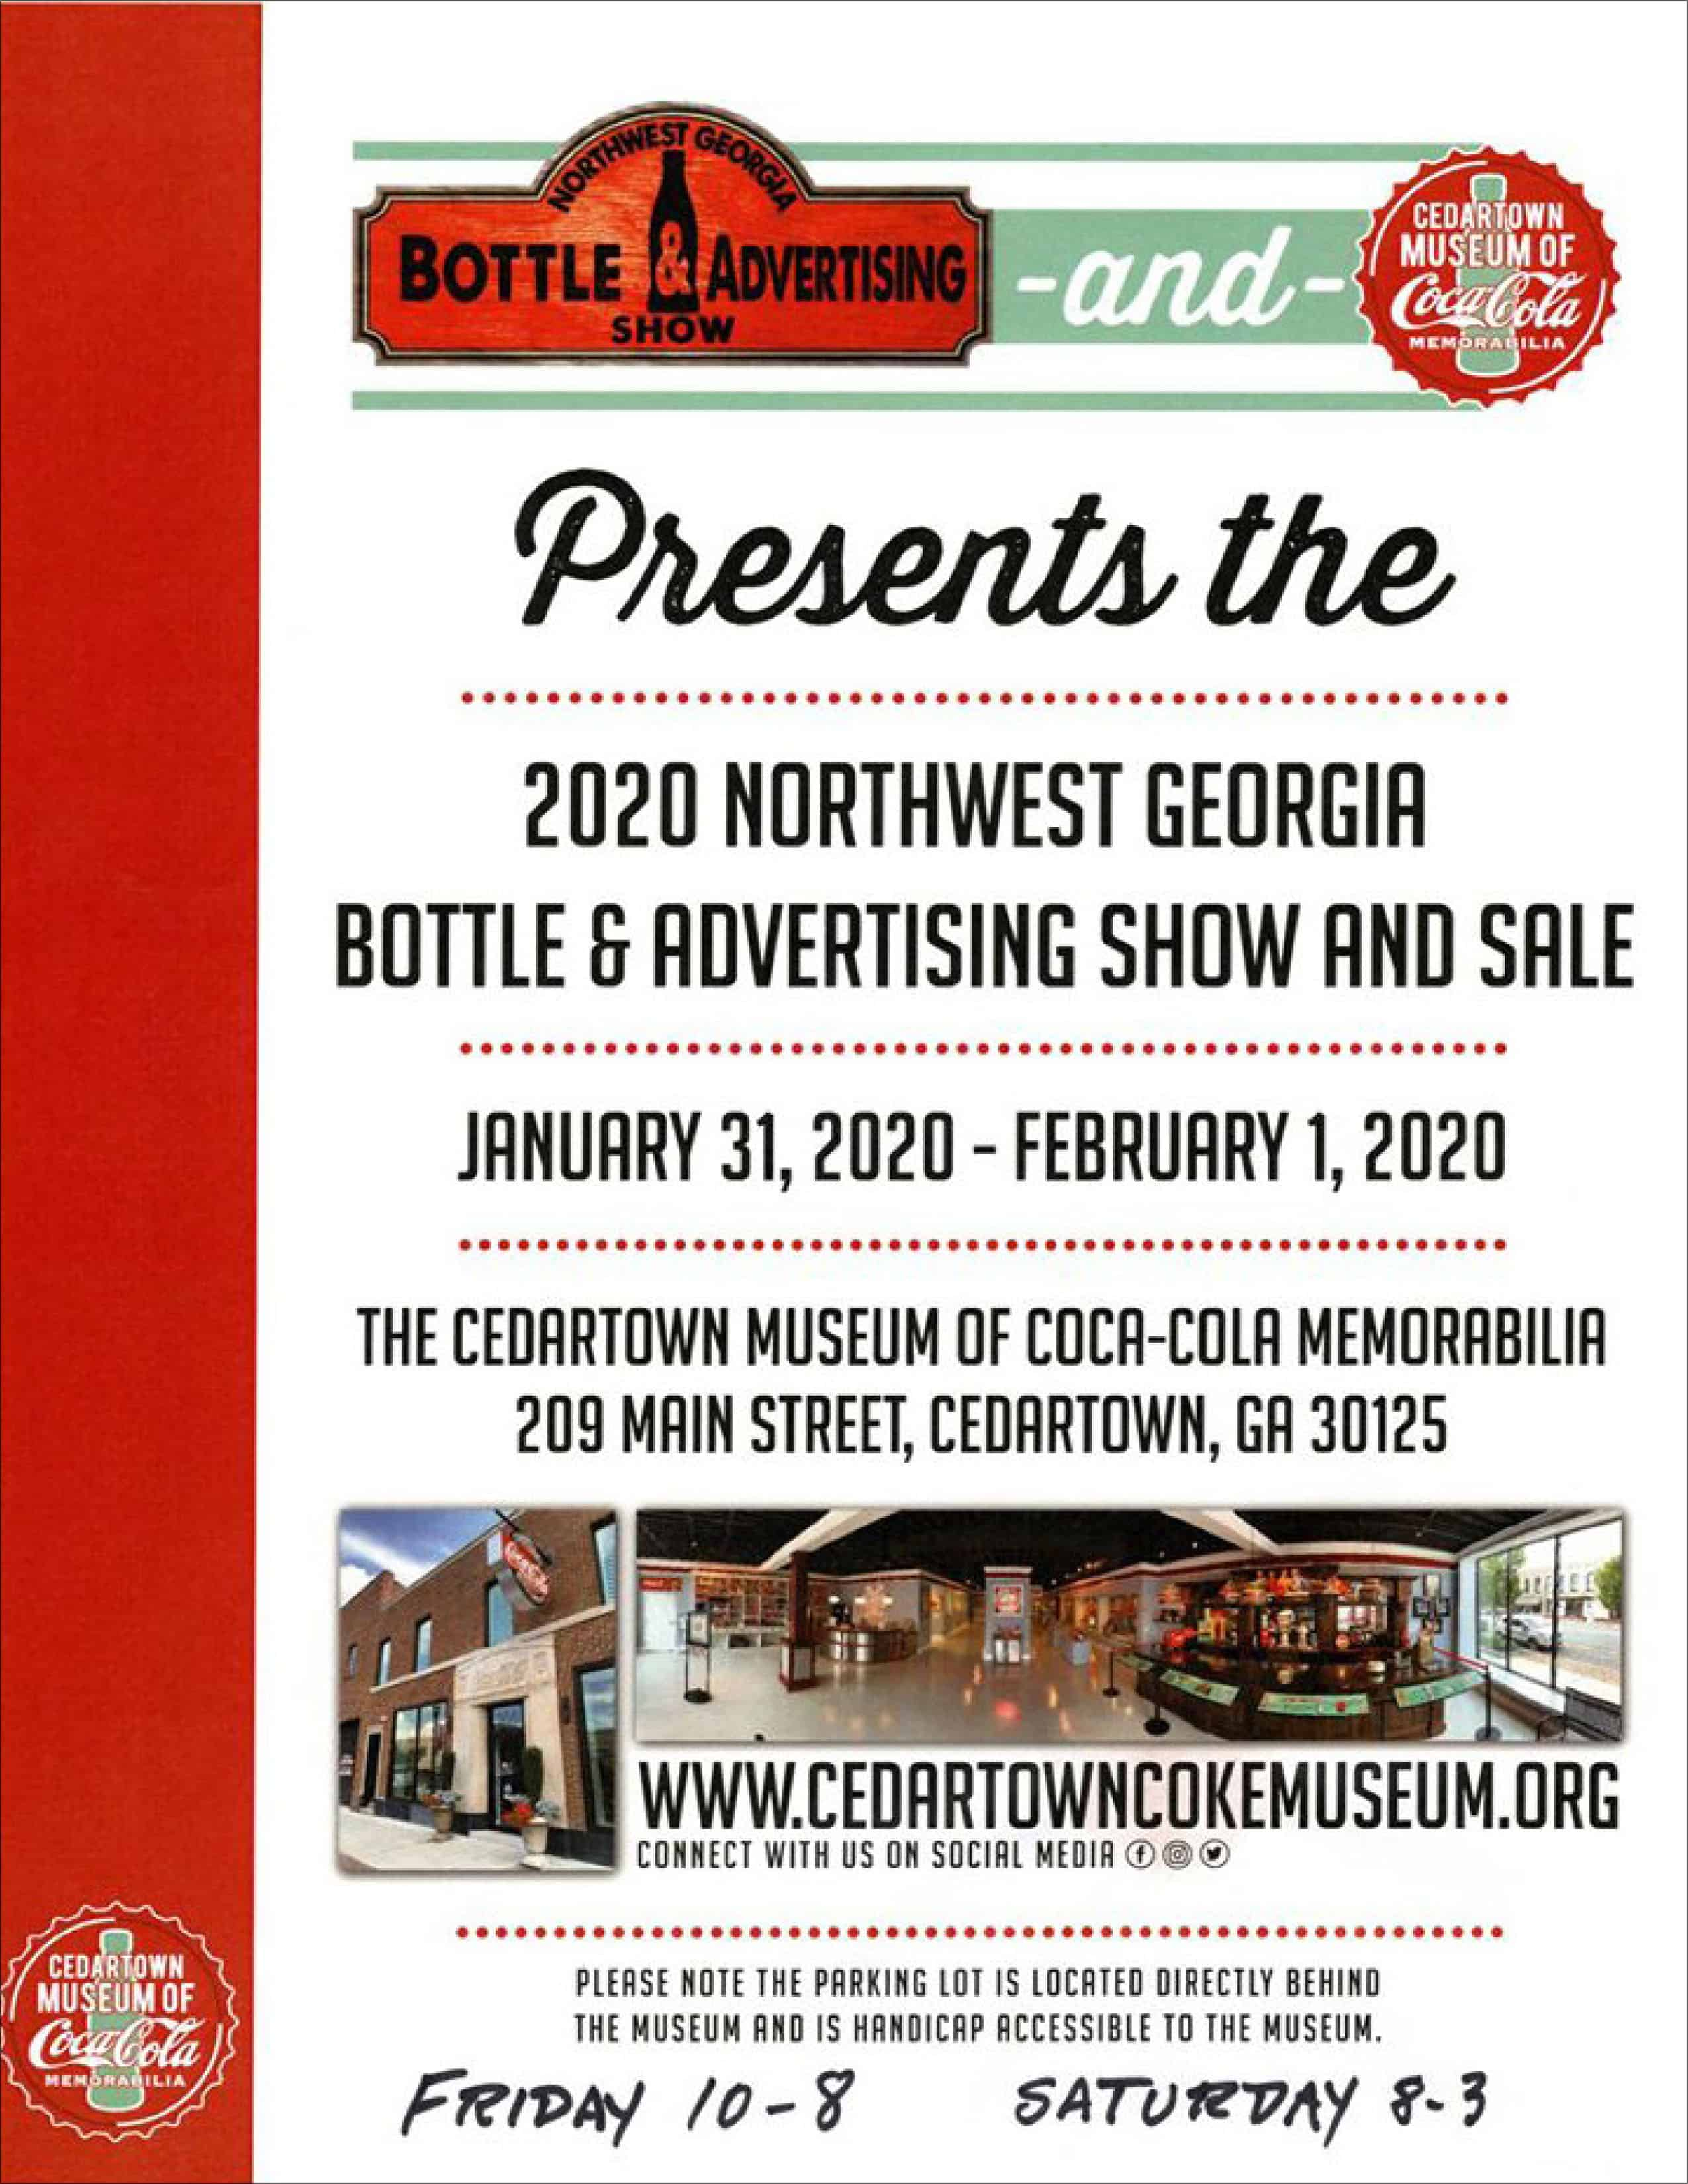 Northwest Georgia Bottle & Advertising Show and Sale @ The Cedartown Museum of Coca-Cola Memorabilia